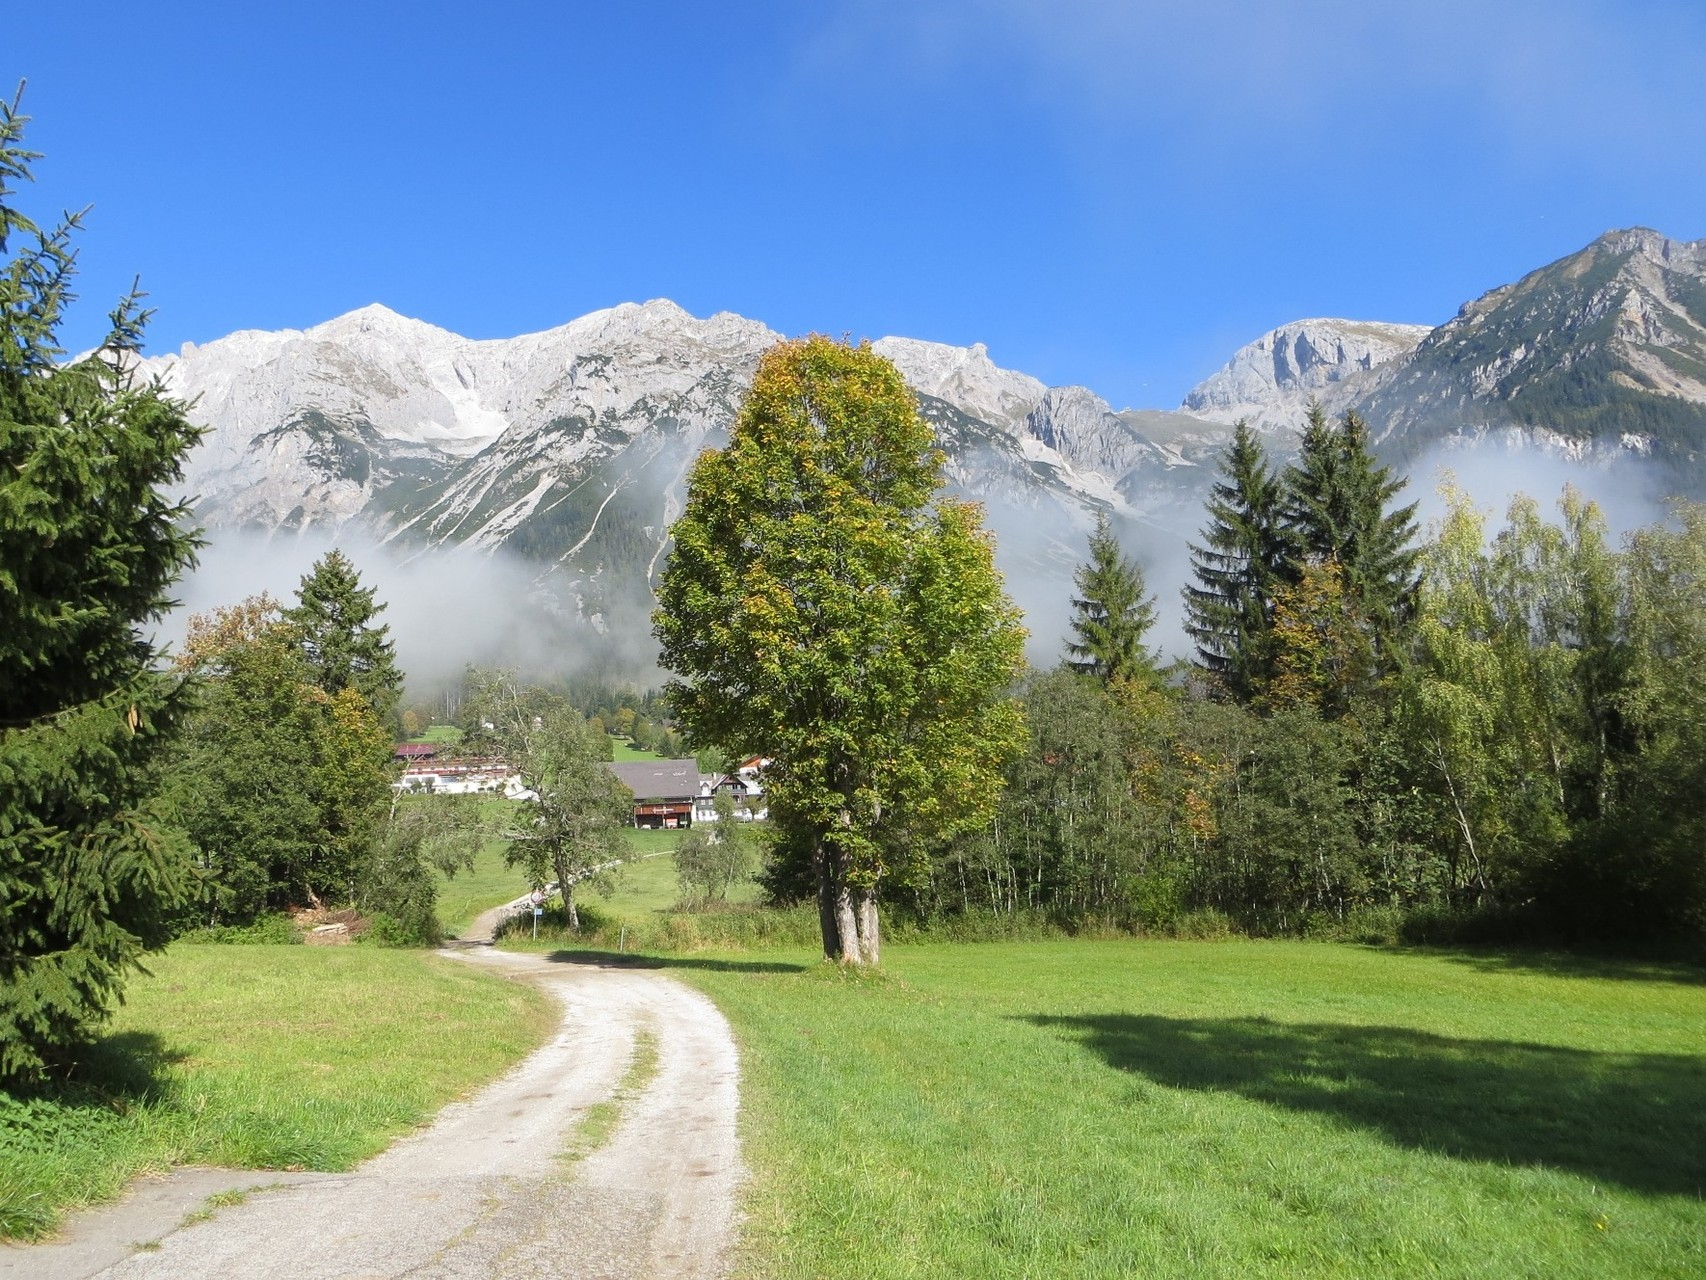 View to the north - to the Dachstein